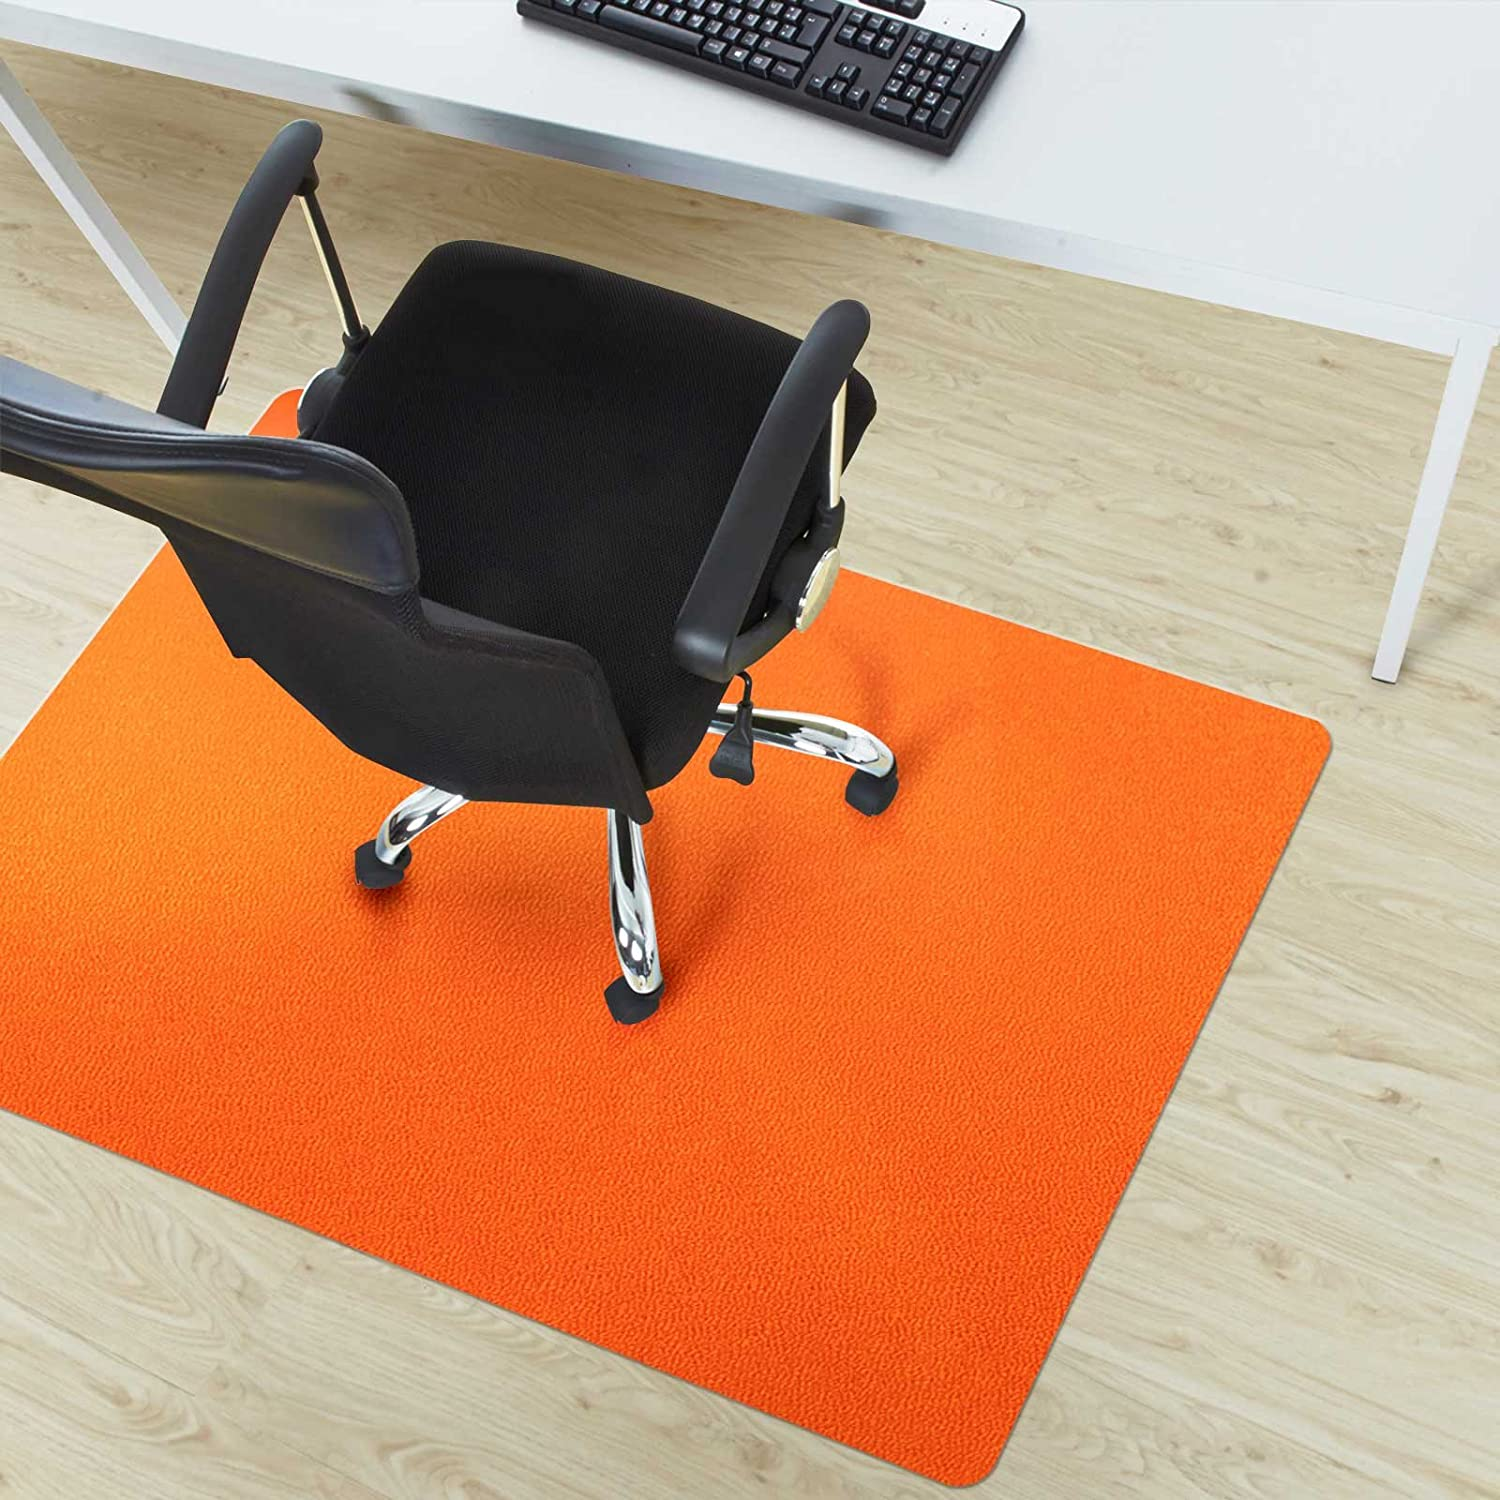 Amazon Chair Mat for Hard Floors